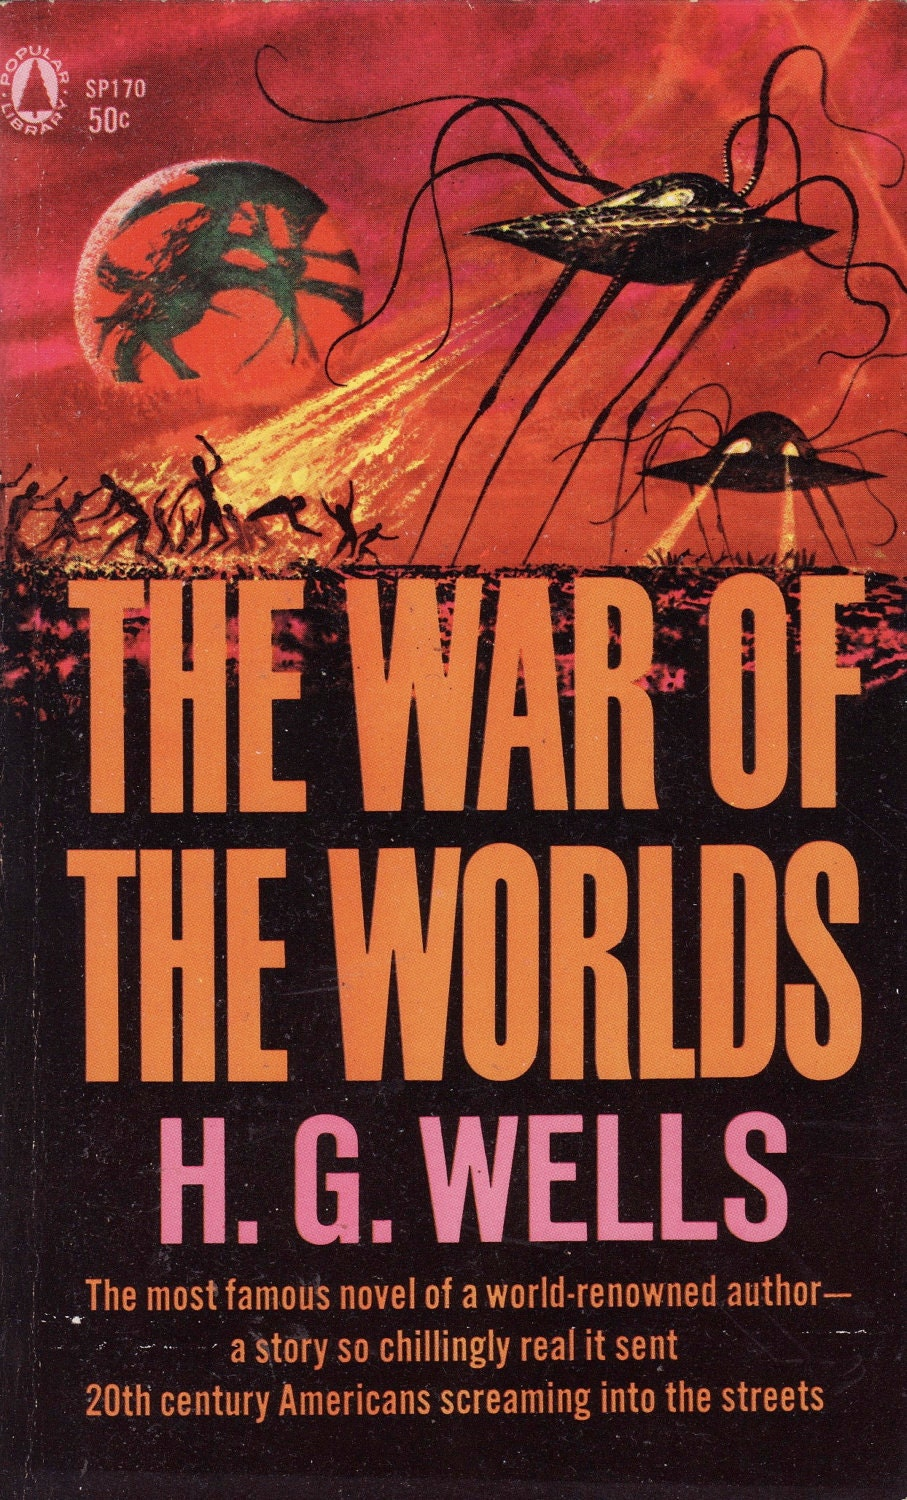 essay on war of the worlds Introduction the first world war went down in history as one of the worst wars ever to be fought, owing to the magnitude of destruction and loss of life it left in its wake.